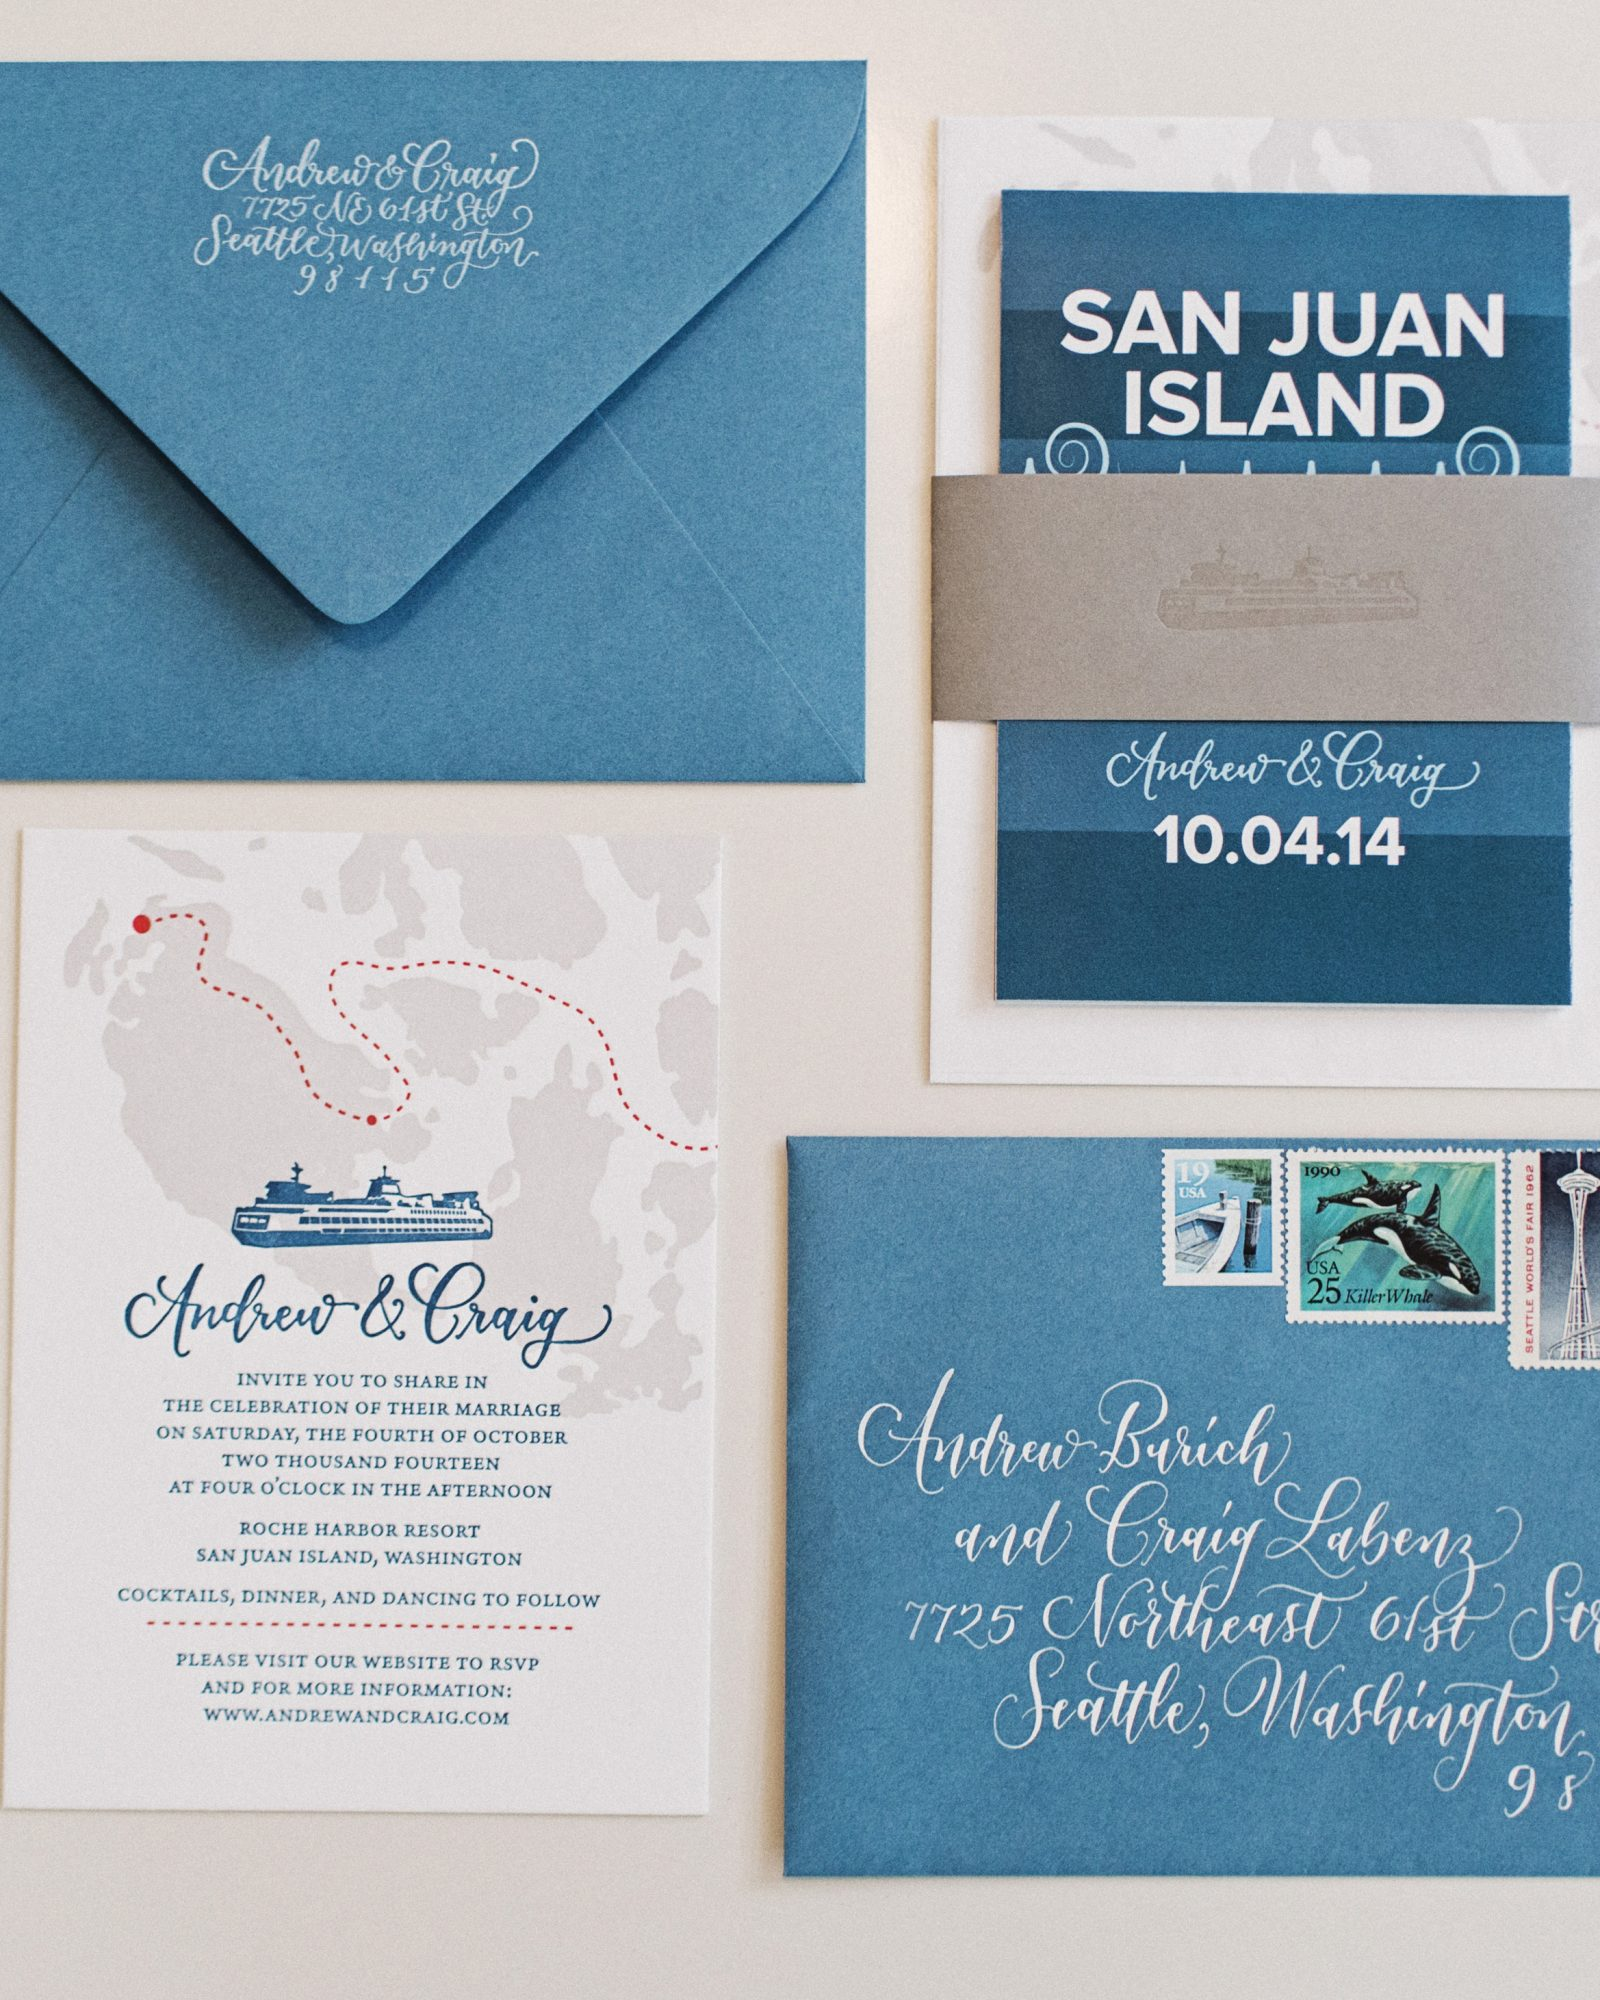 craig-andrew-wedding-invite-009-s111833-0215.jpg